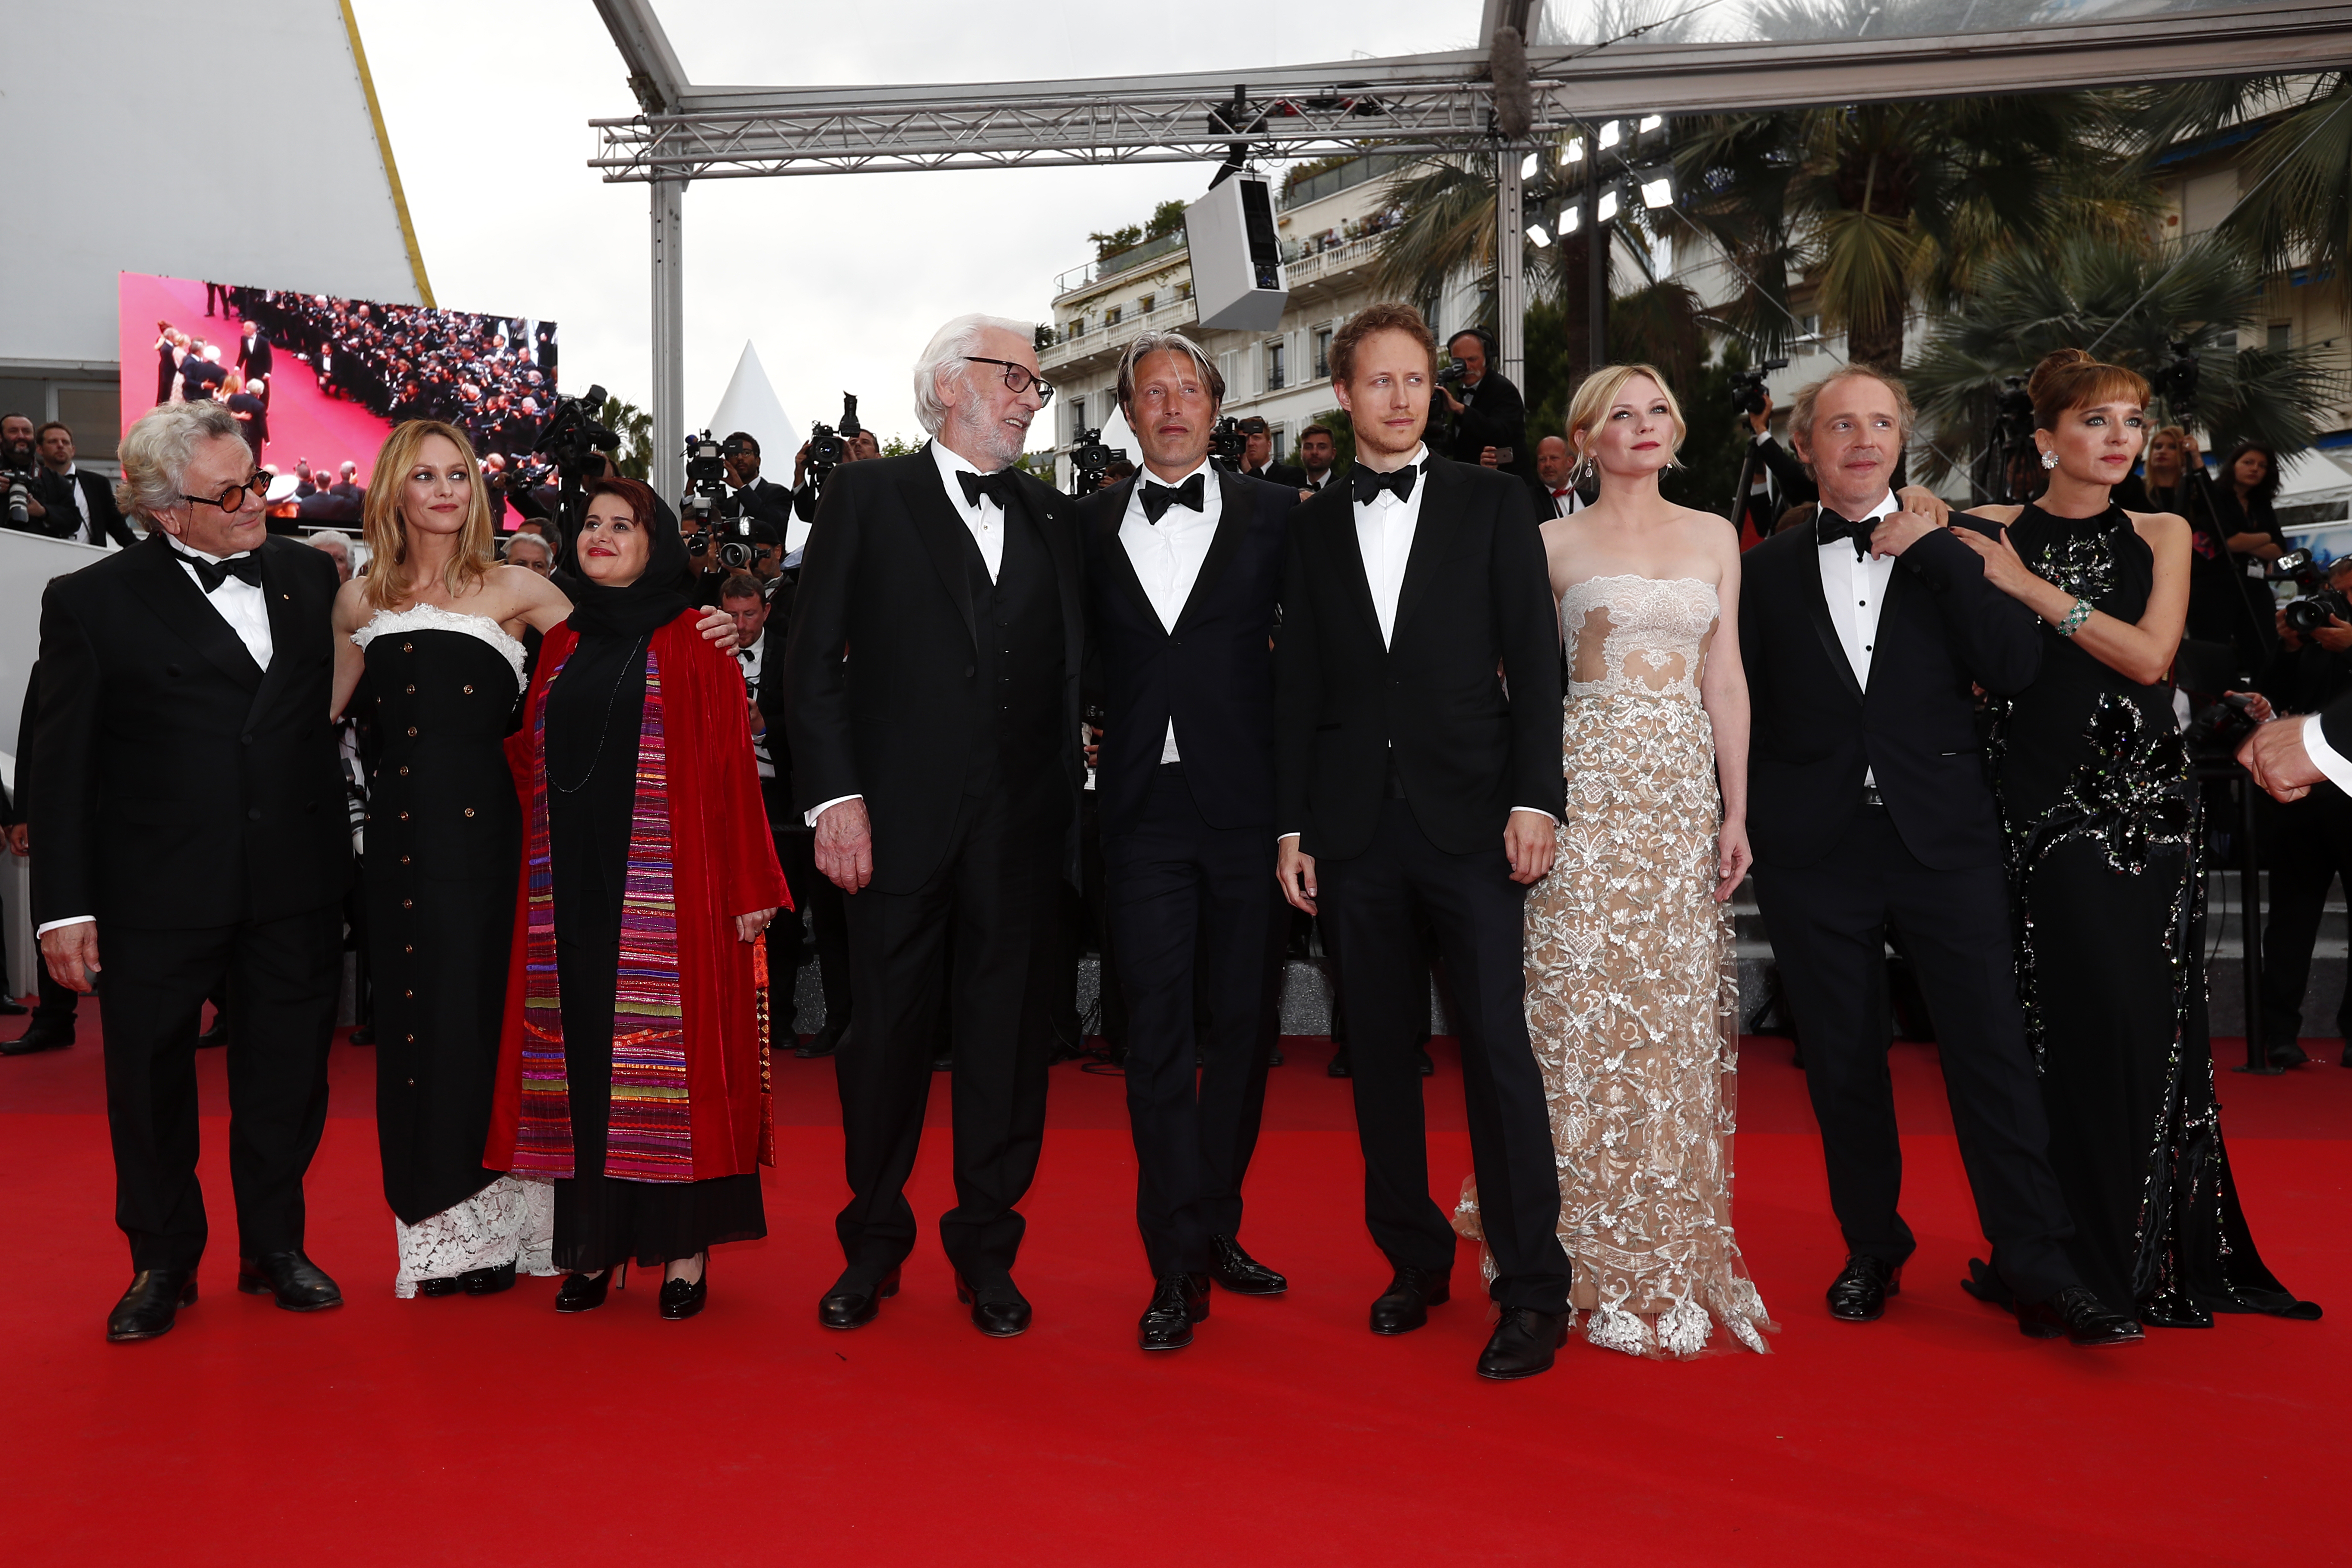 2016 Cannes Film Festival Jury members (Left to right): Australian director George Miller, French actress Vanessa Paradis, Iranian producer Katayoon Shahabi, Canadian actor Donald Sutherland, Danish actor Mads Mikkelsen, Hungarian director Laszlo Nemes, US actress Kirsten Dunst, French director Arnaud Desplechin and Italian actress Valeria Golino arrive for the Closing Awards Ceremony of the 69th annual Cannes Film Festival. Photo by Ian Langsdon/EPA